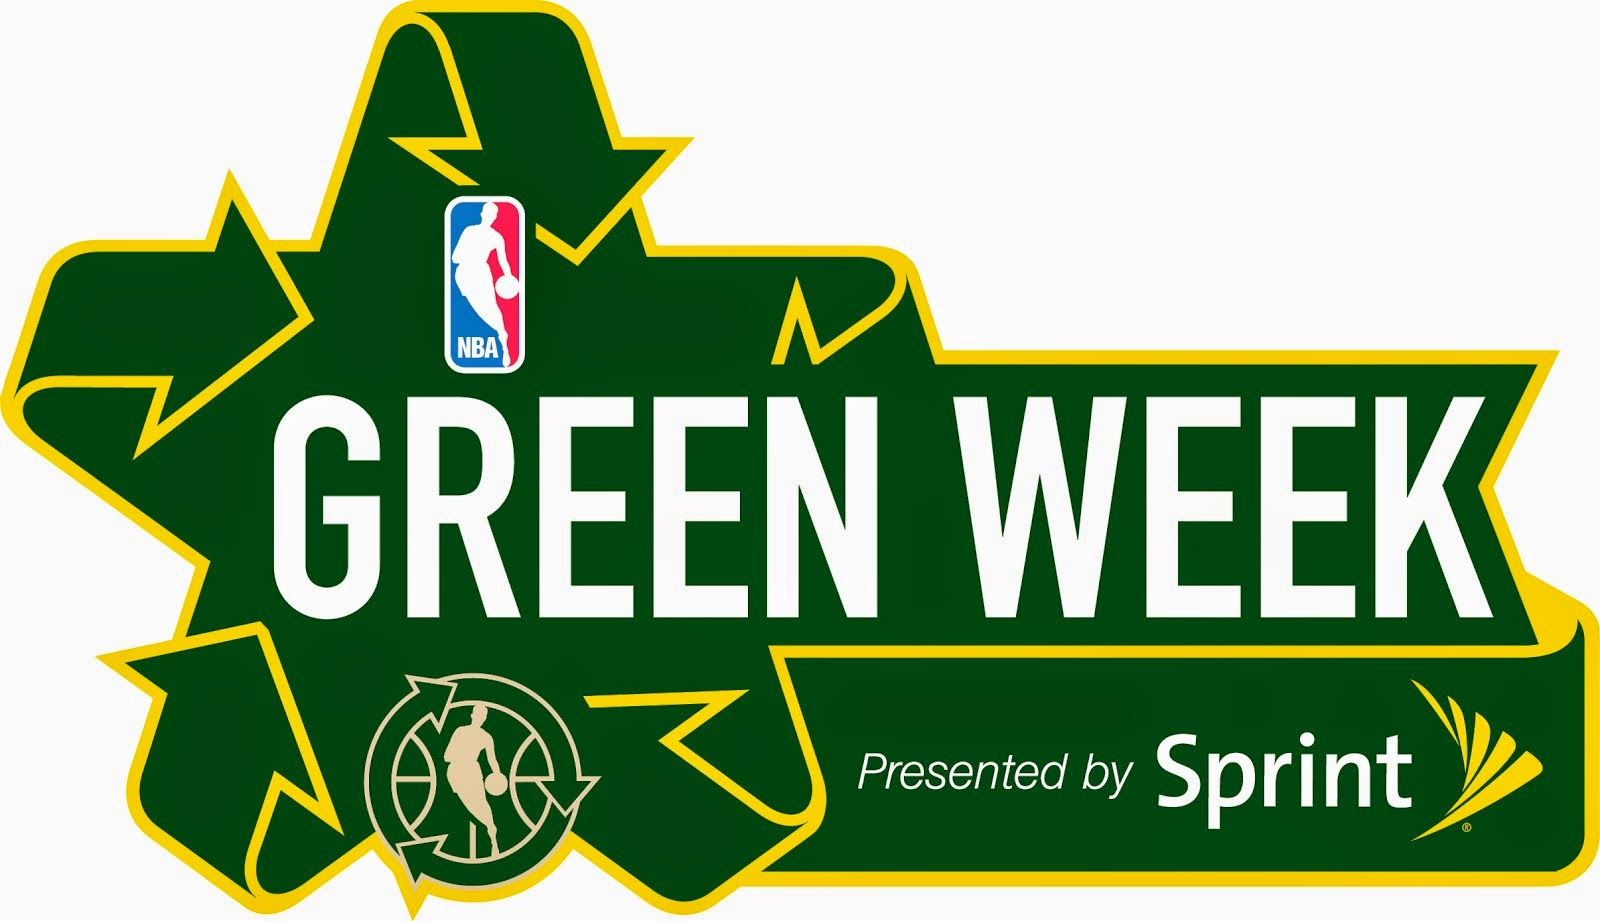 how tall is nba green